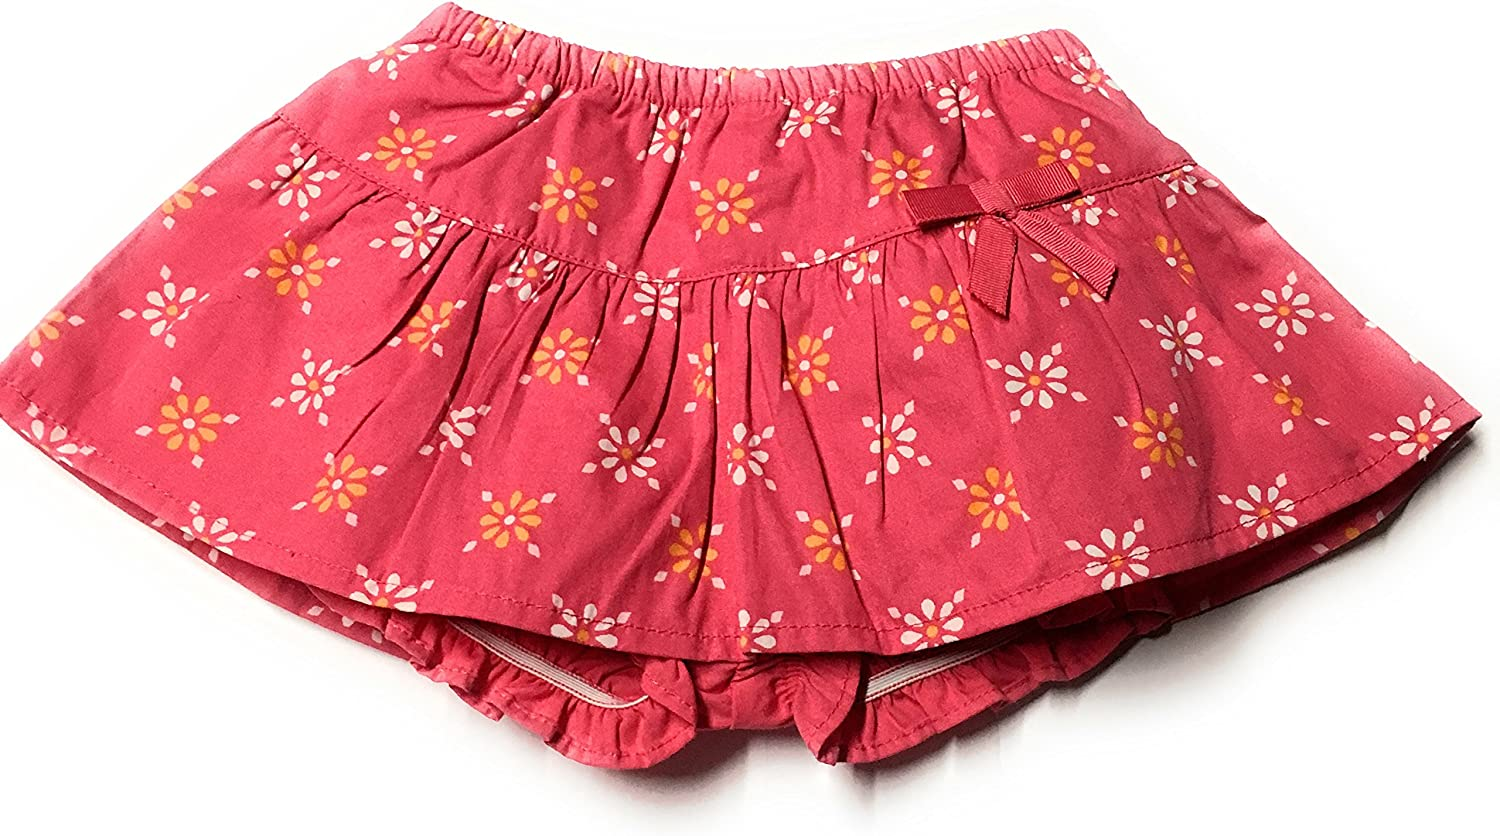 0-3 Months Gymboree Baby Girls Pink Floral Skirt and Bloomer